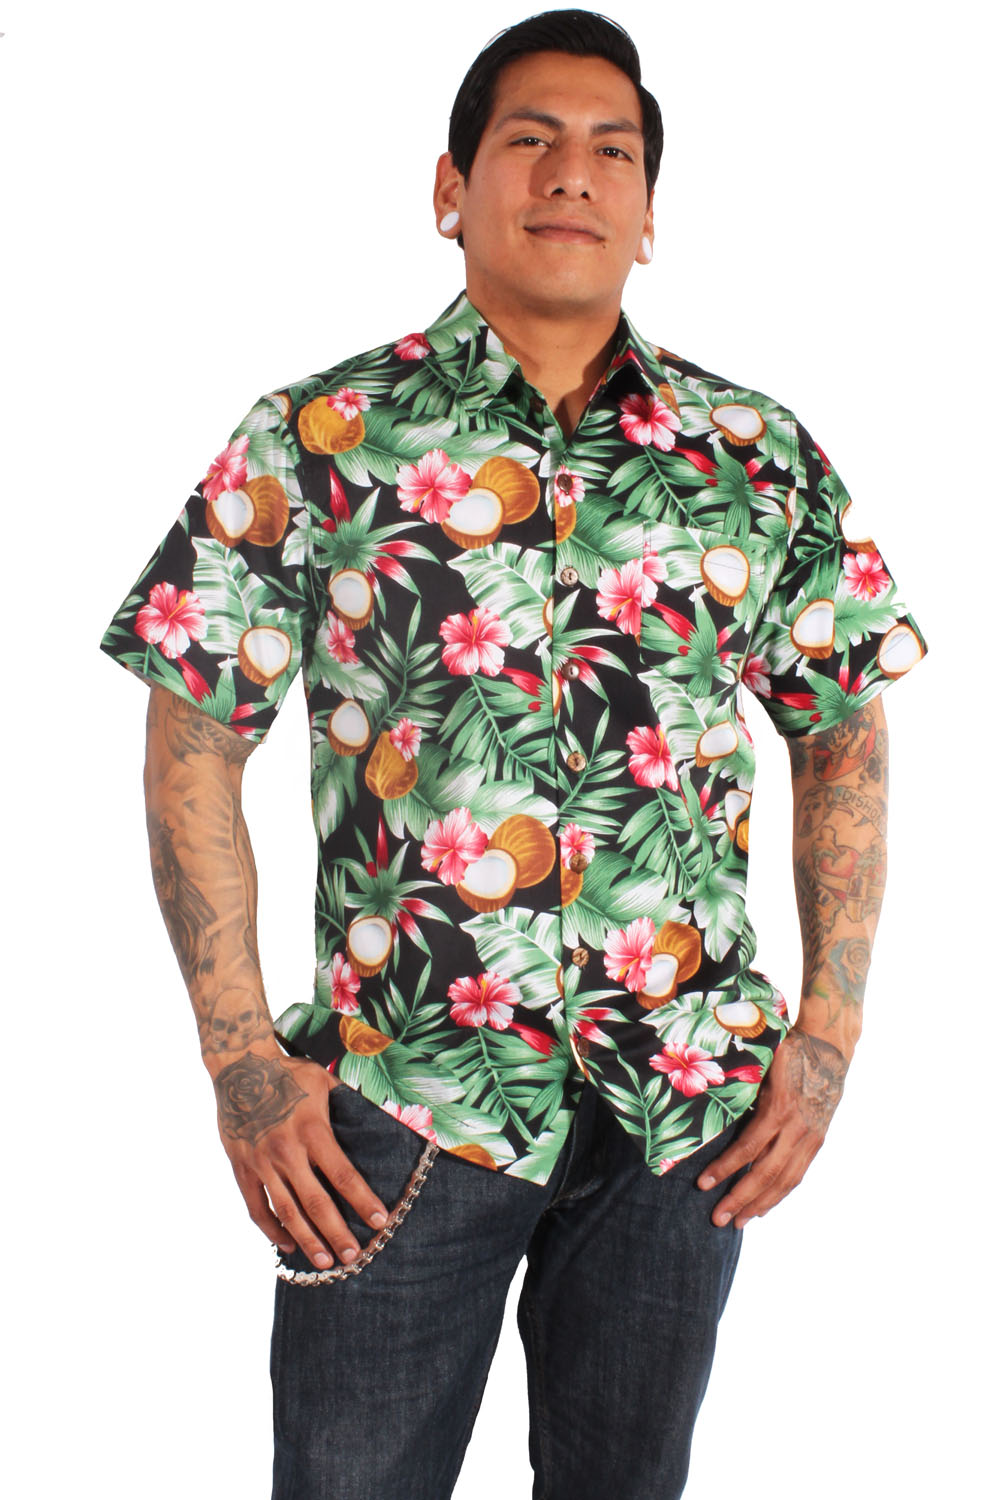 Kokosnuss retro Hawaii rockabilly Hawaiihemd Hibiskus Blumen Shirt